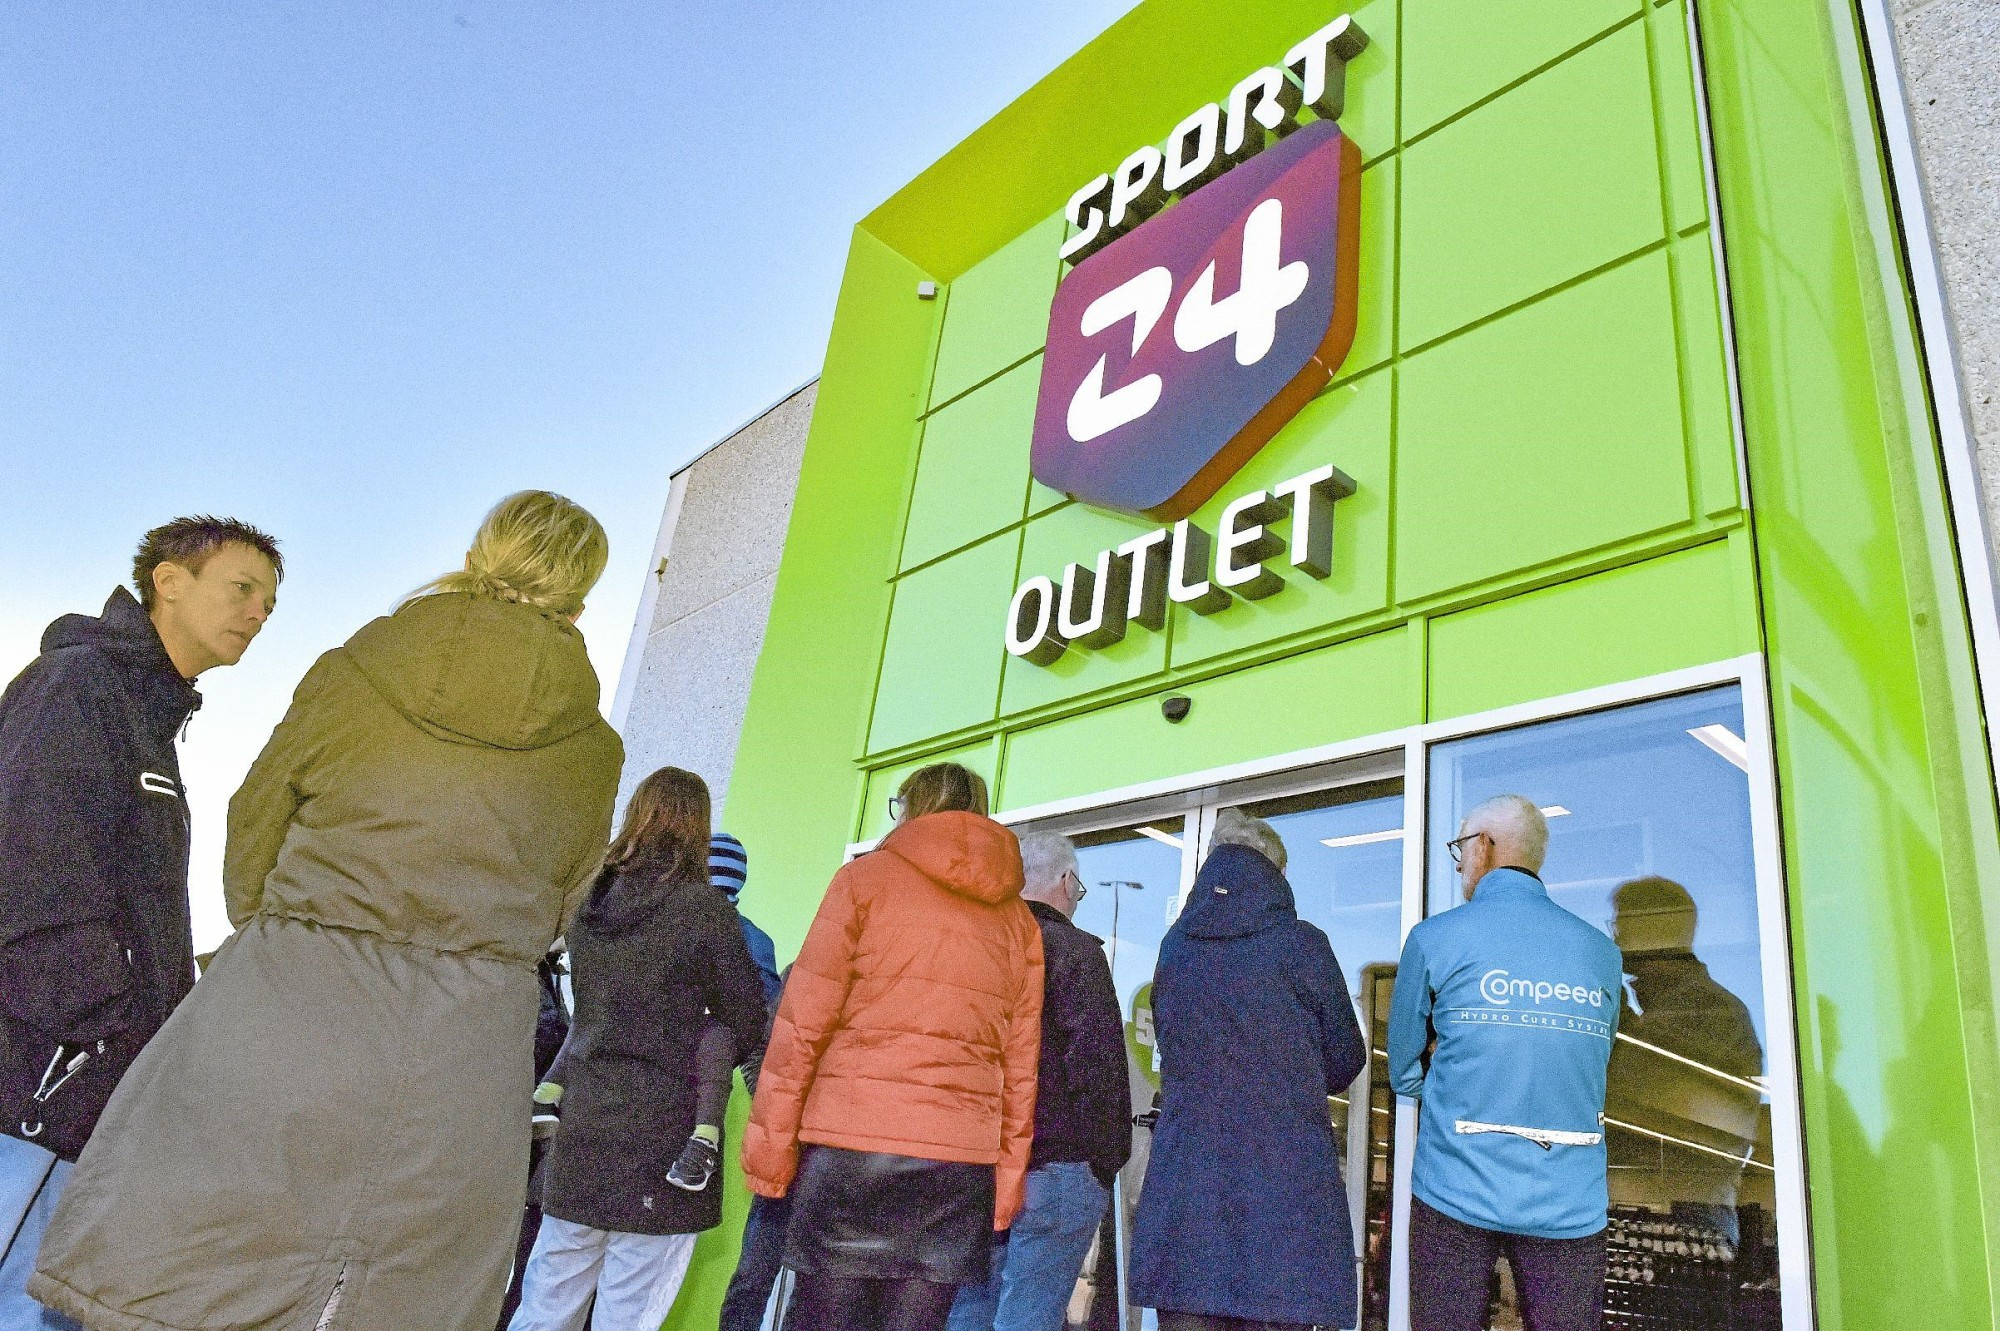 sport outlet thisted